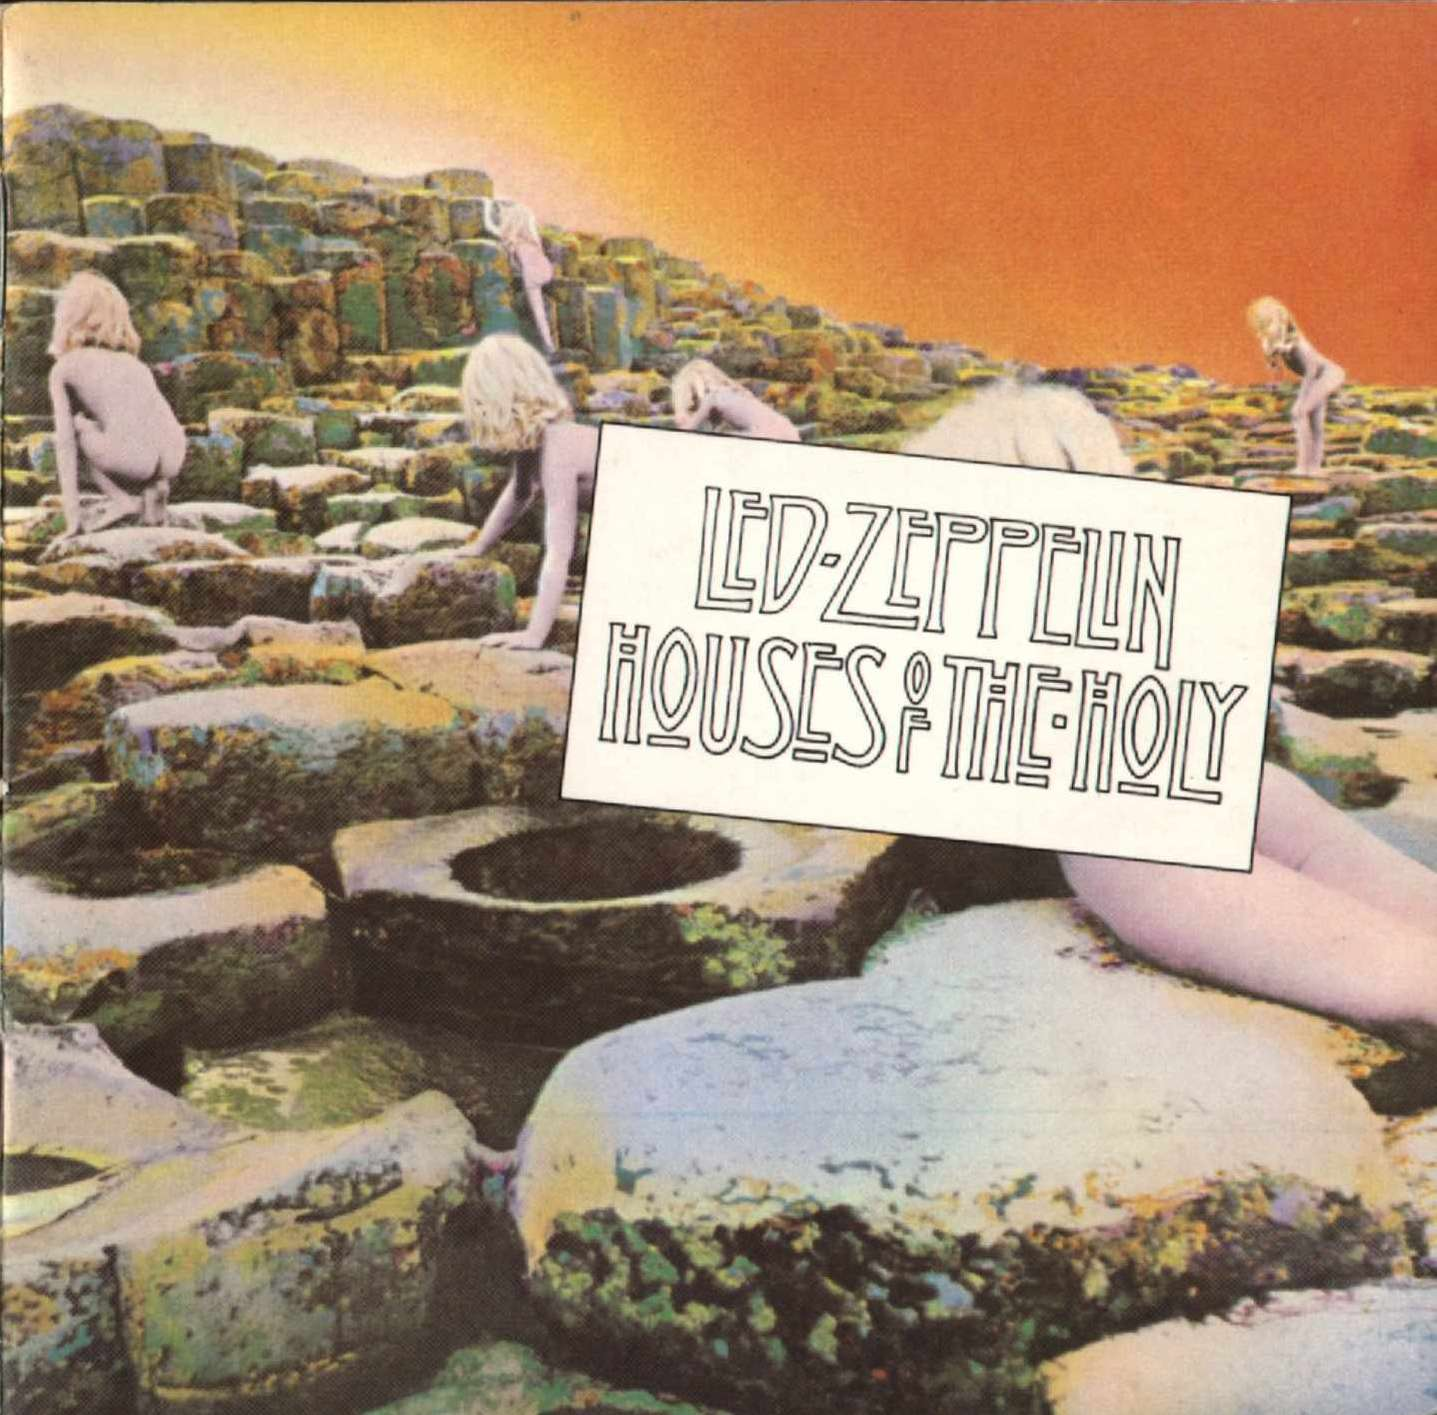 Led Zeppelin - 1973 - Houses of The HolyHouses Of The Holy Album Cover